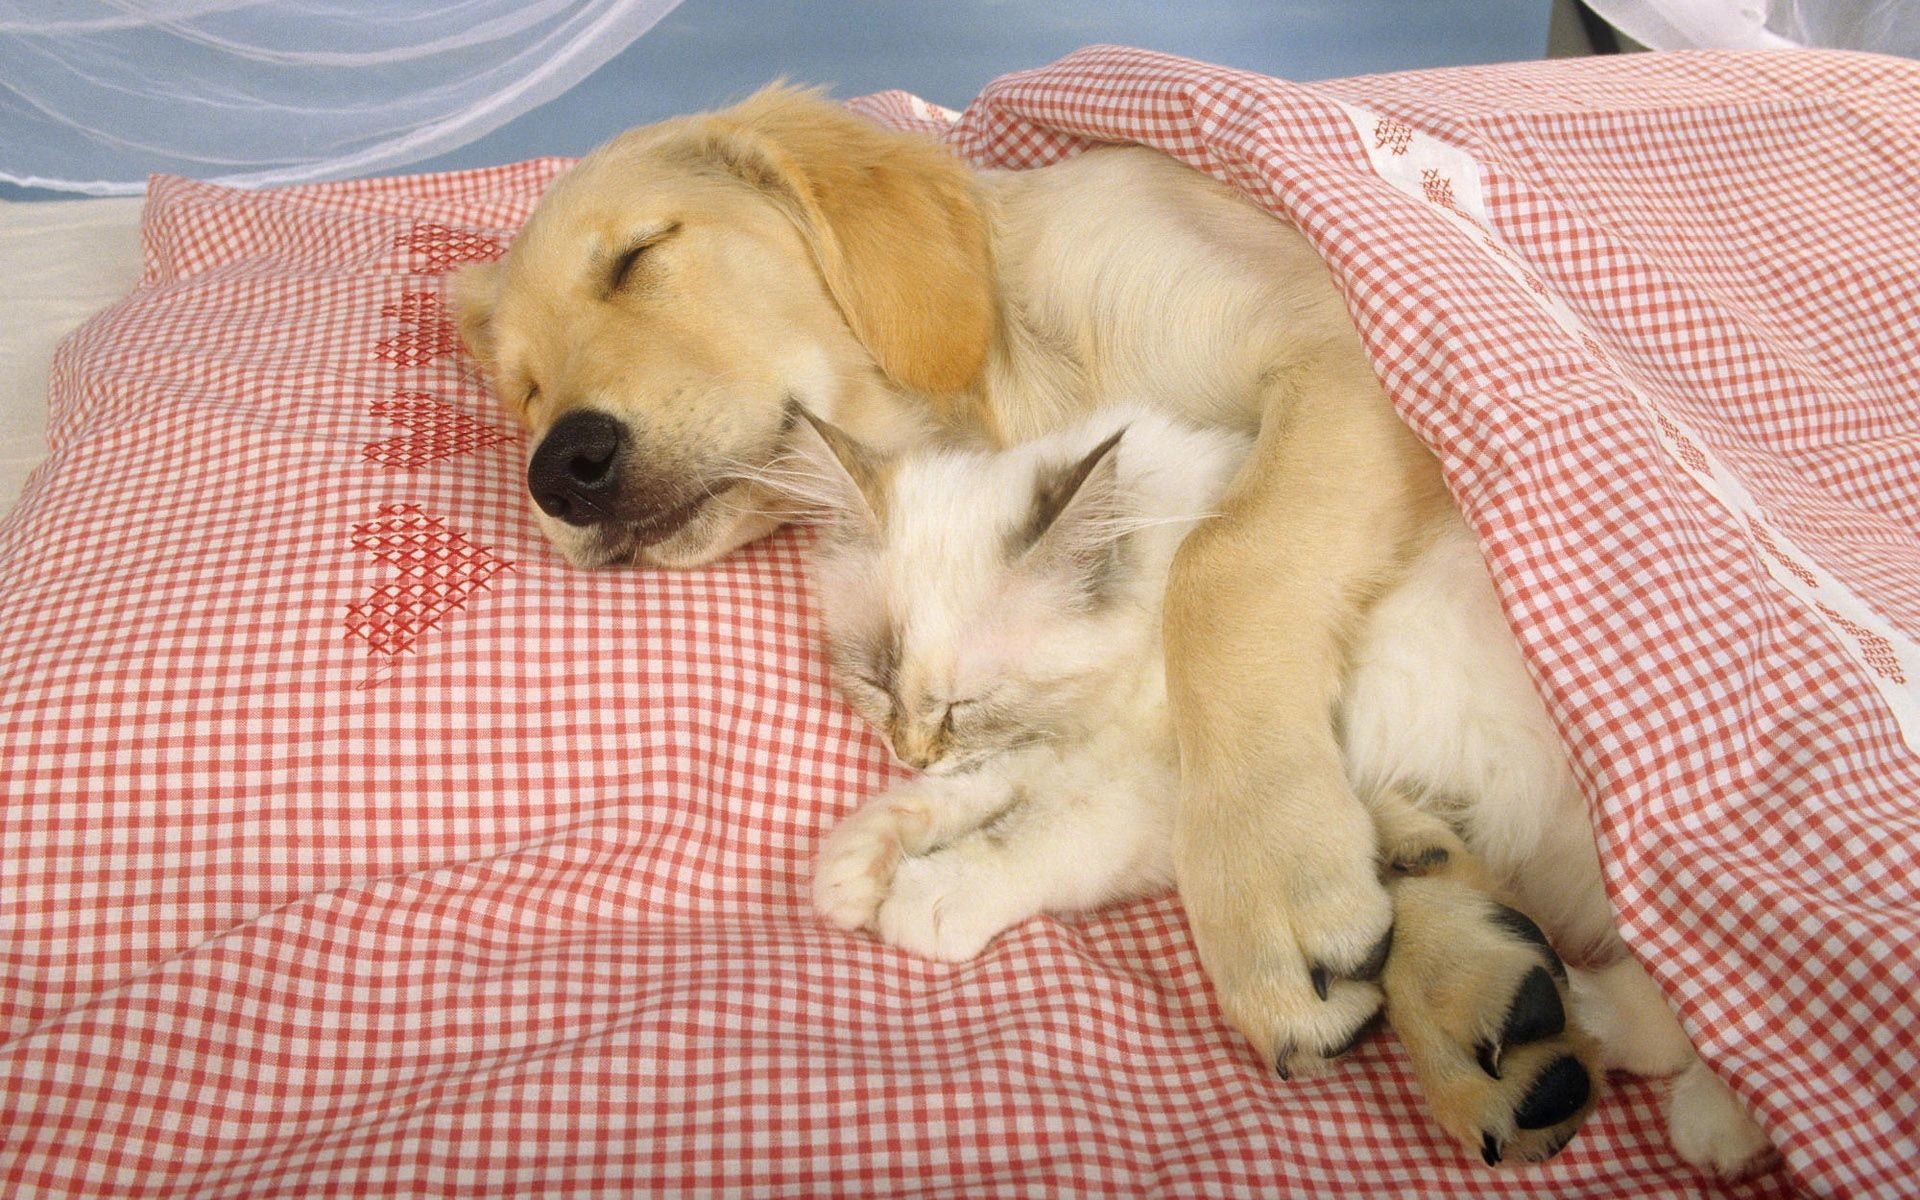 wallpaper cats and dogs – Wallpaper